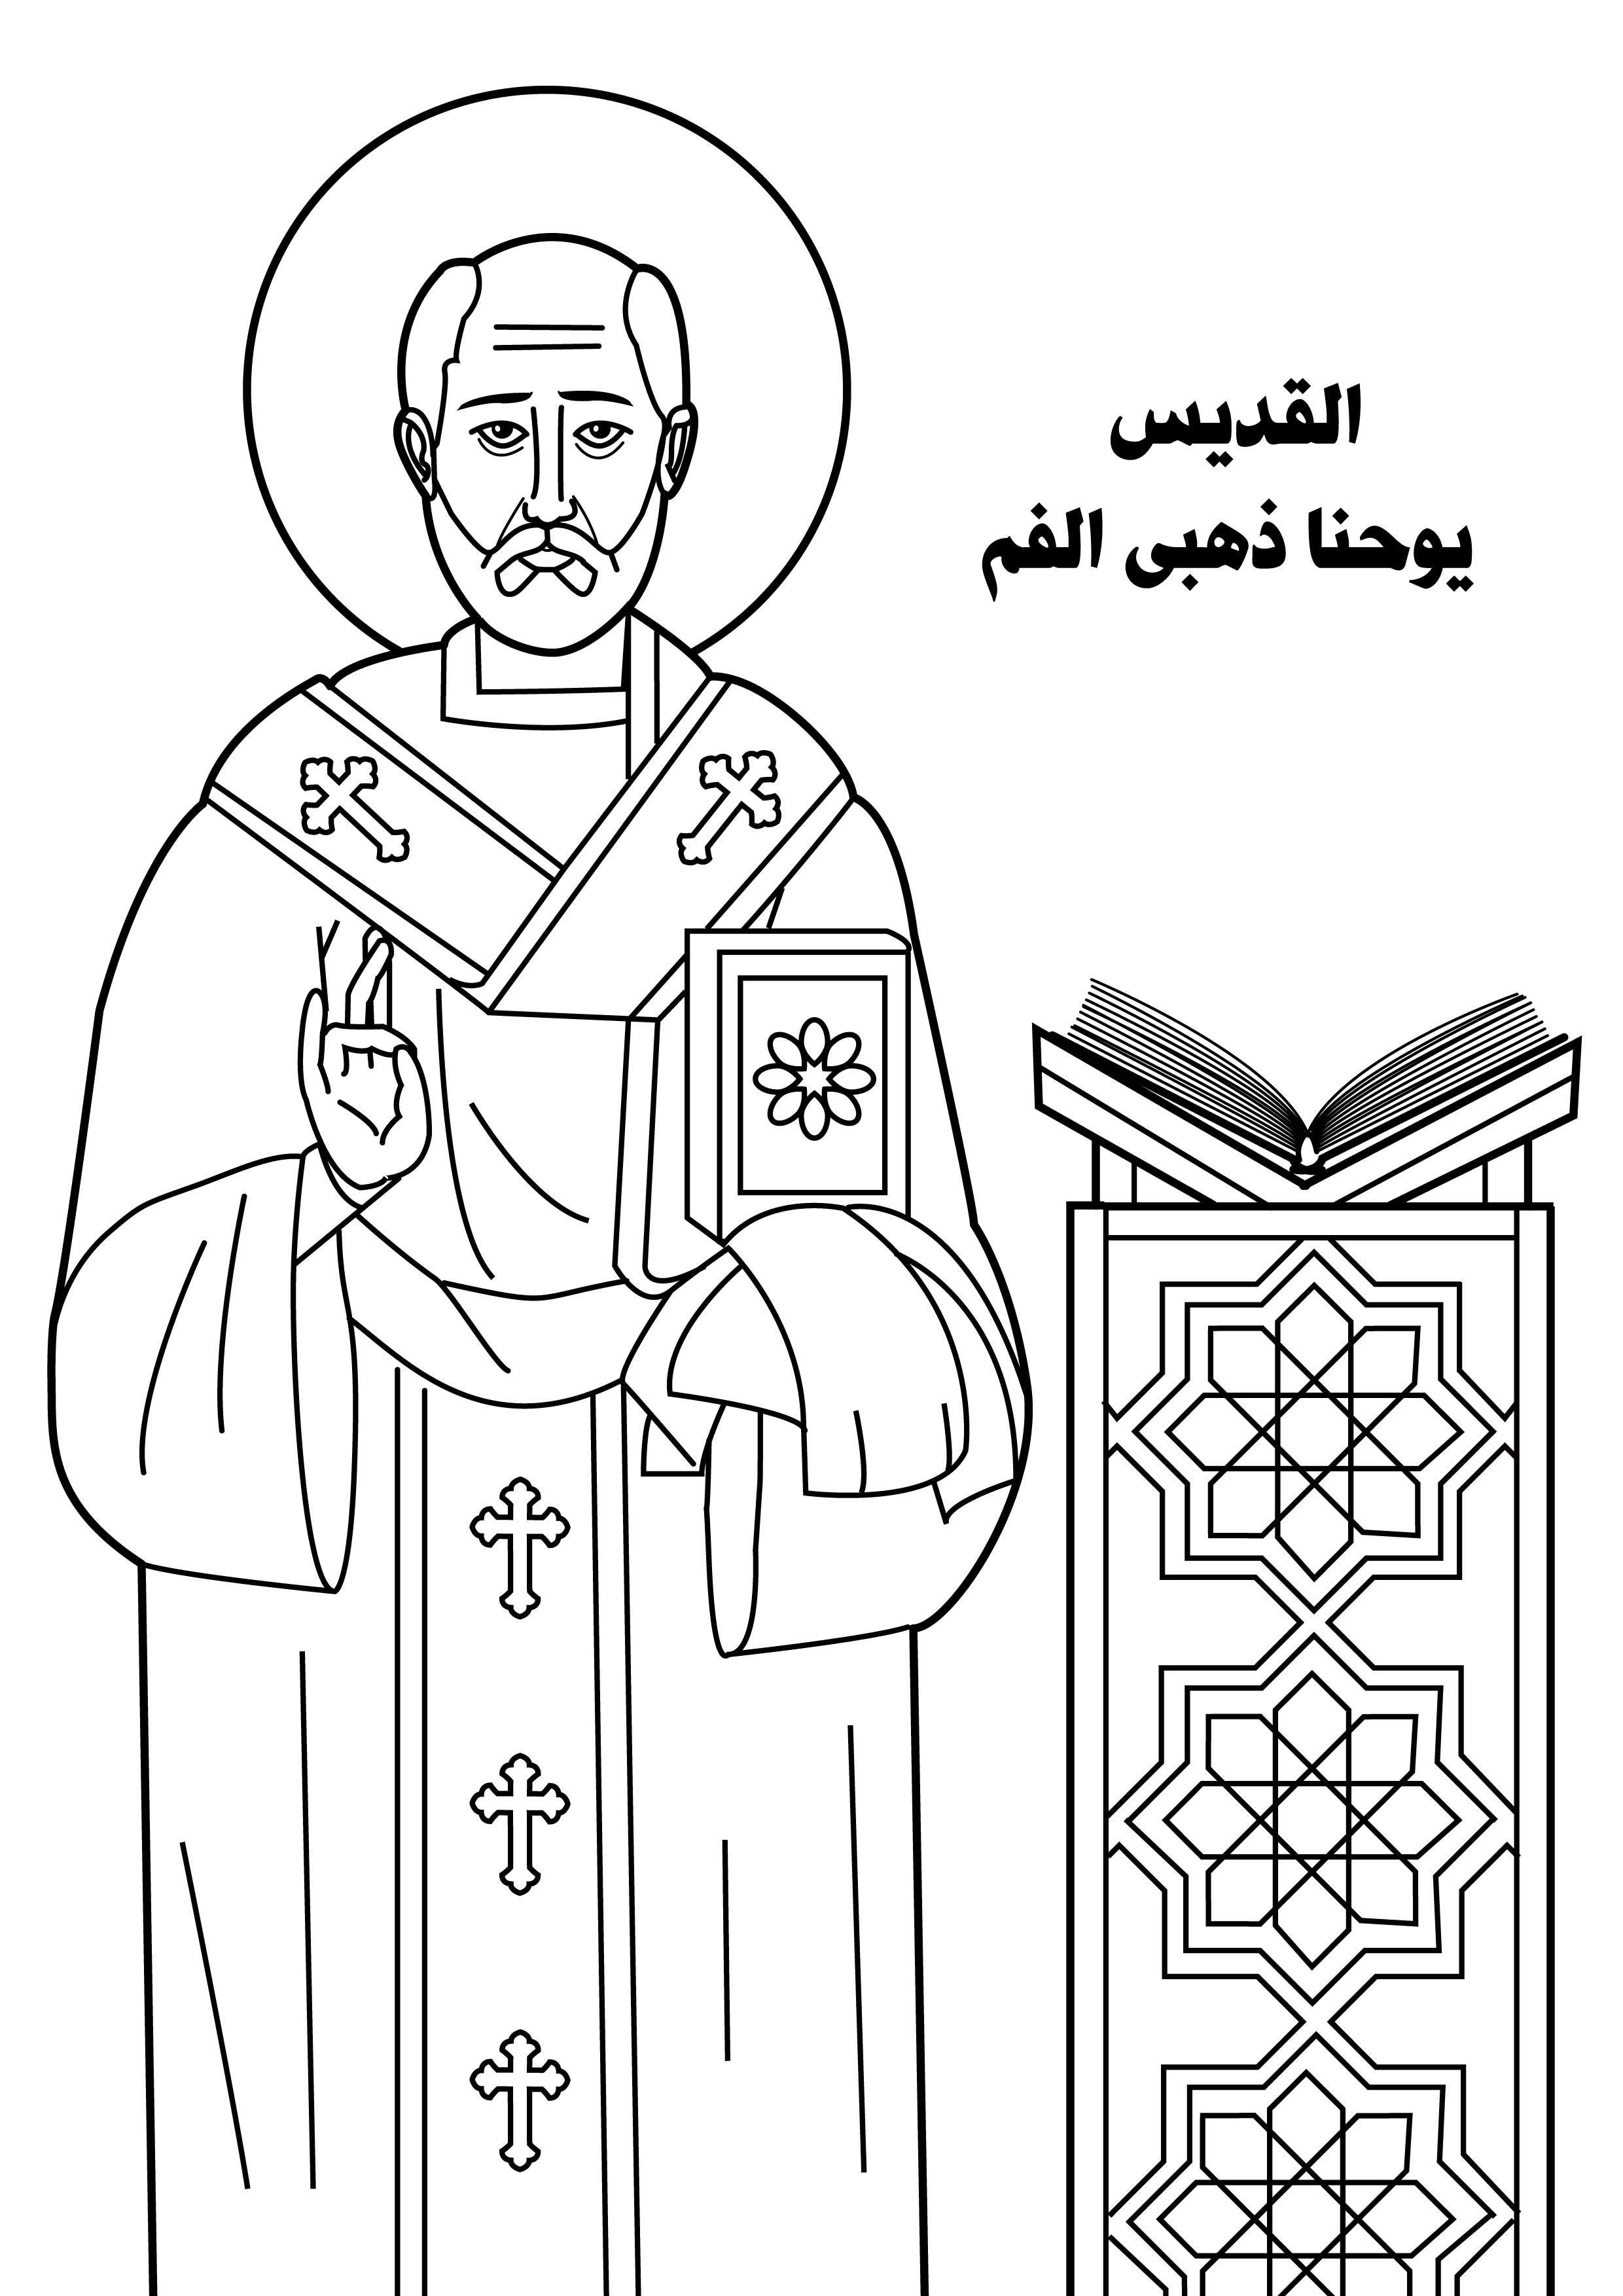 All Saints Coloring Pages - Coloring Home